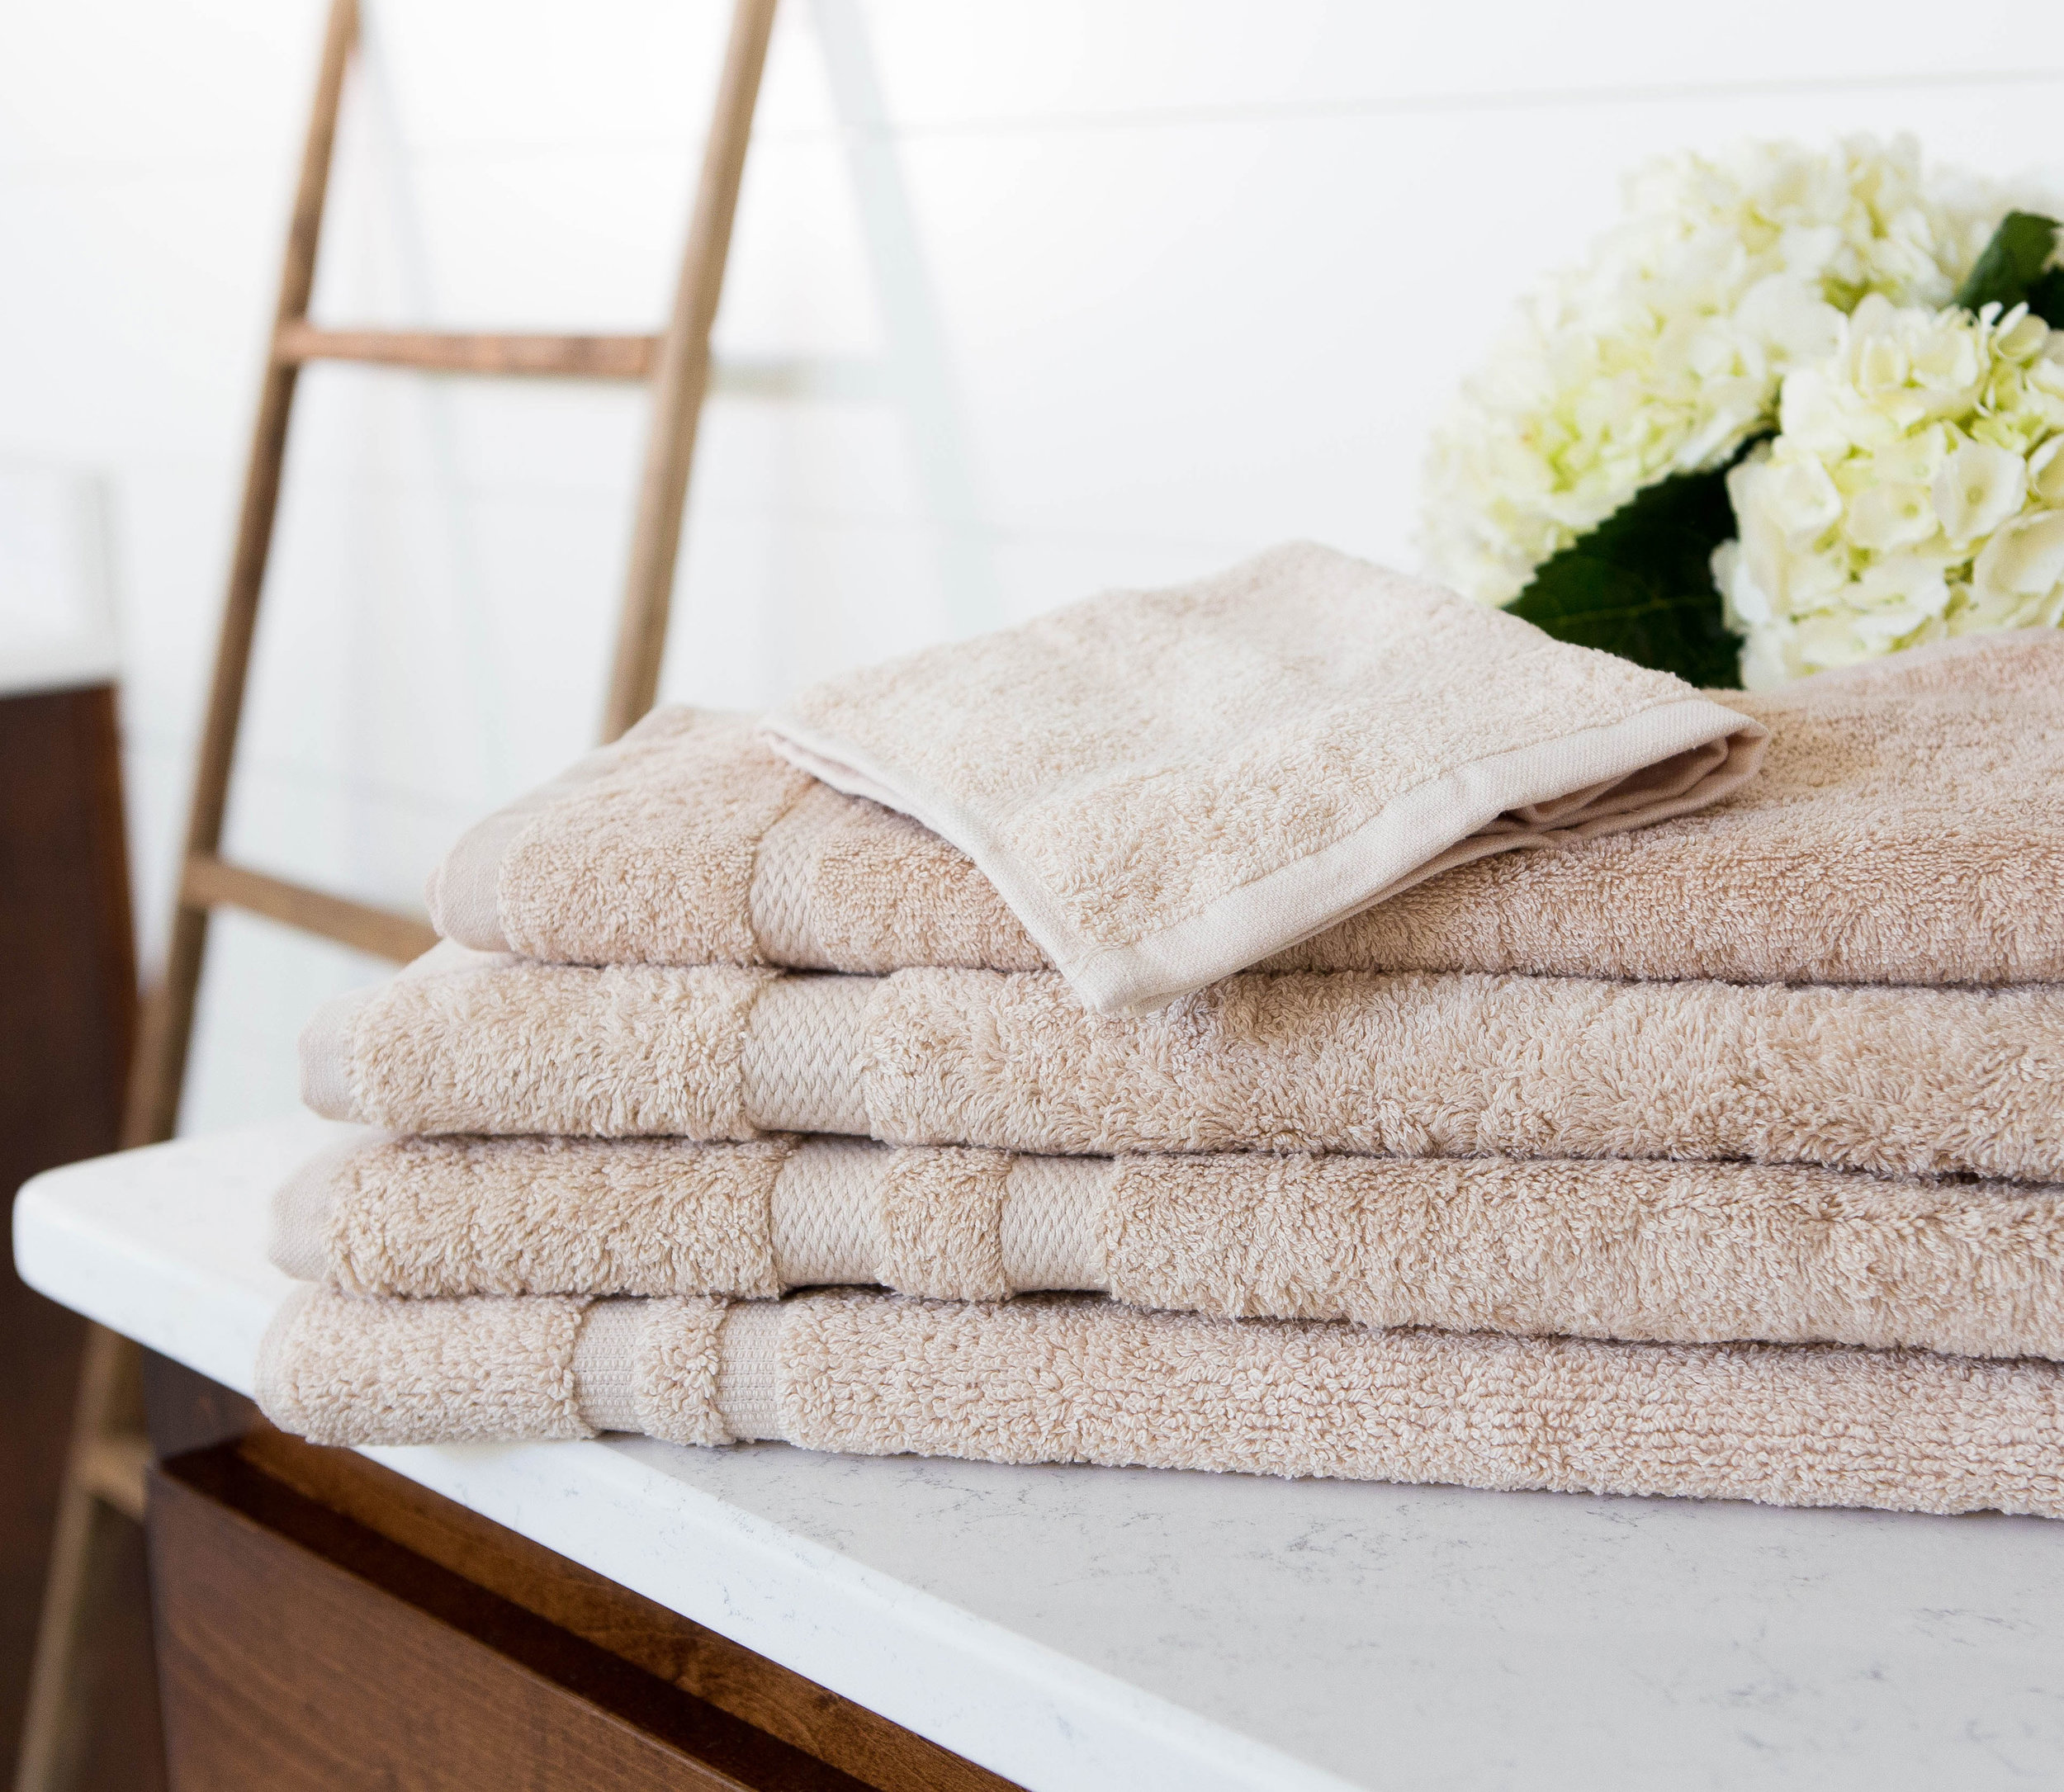 LIfestyle-towels.jpg